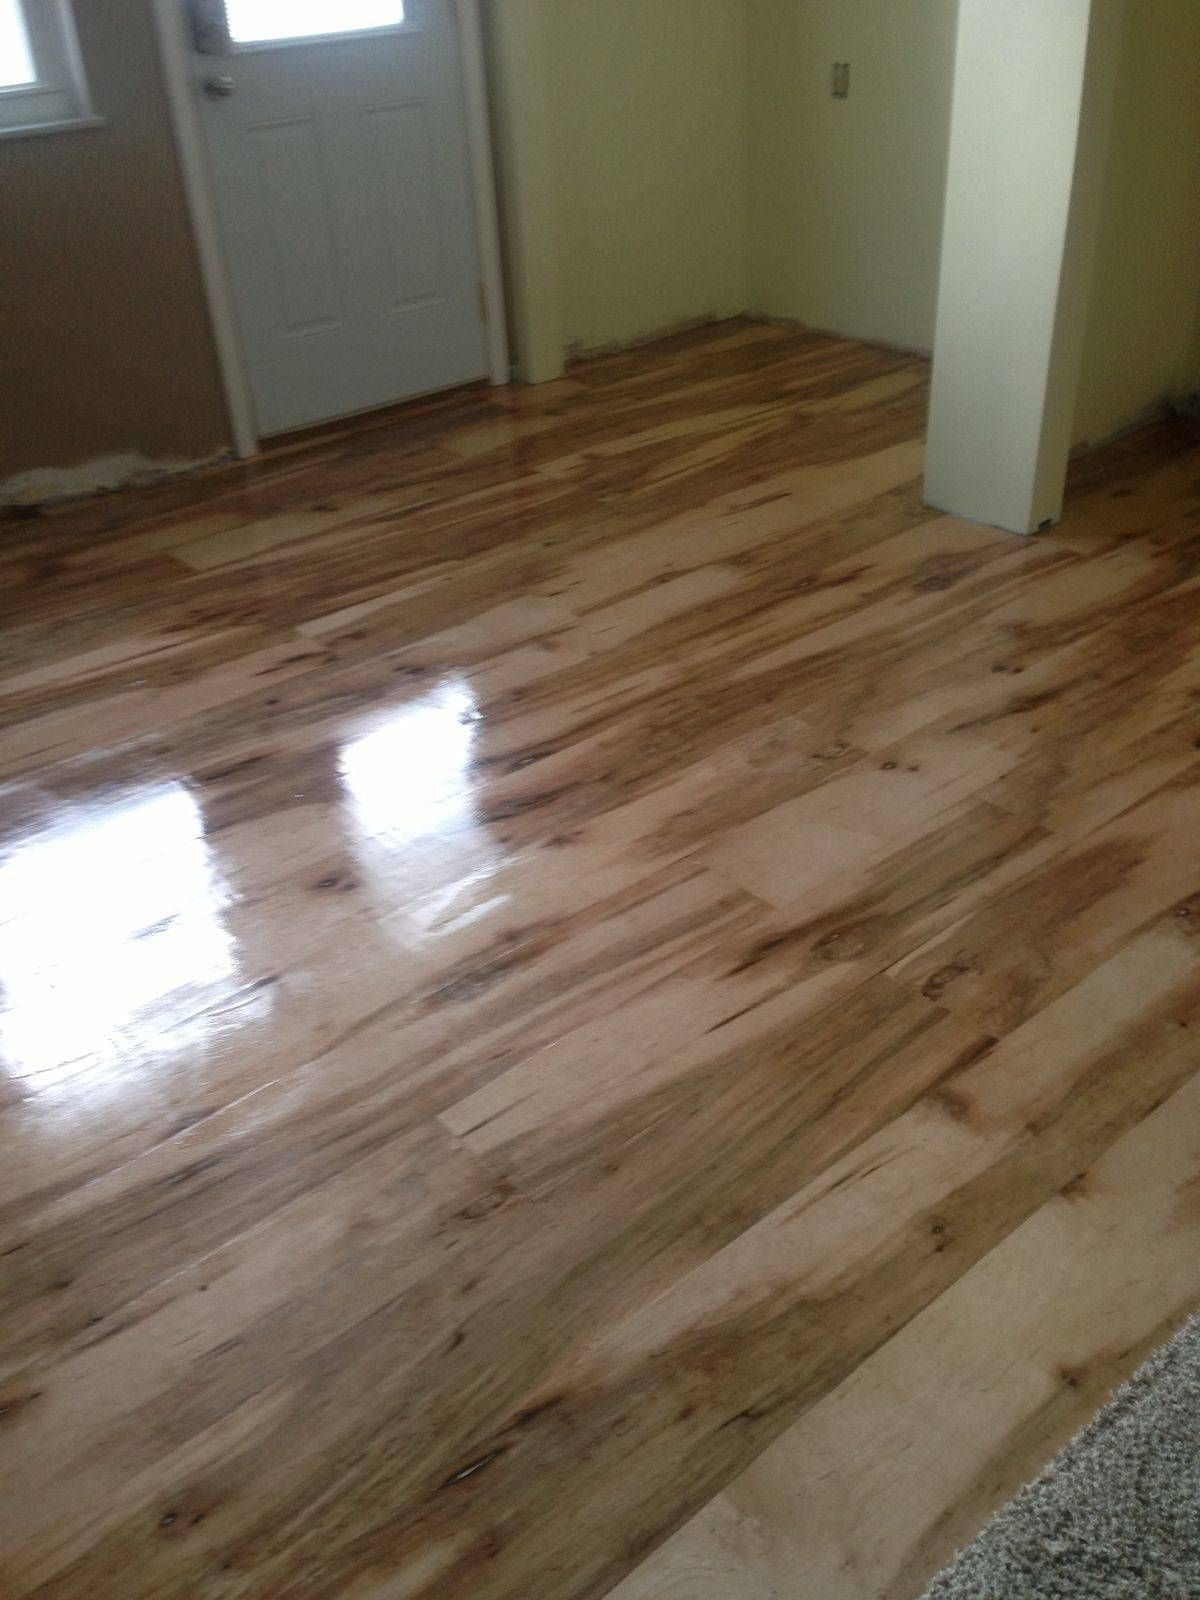 25 Stone Flooring Ideas With Pros And Cons: Plywood Flooring, Diy Flooring